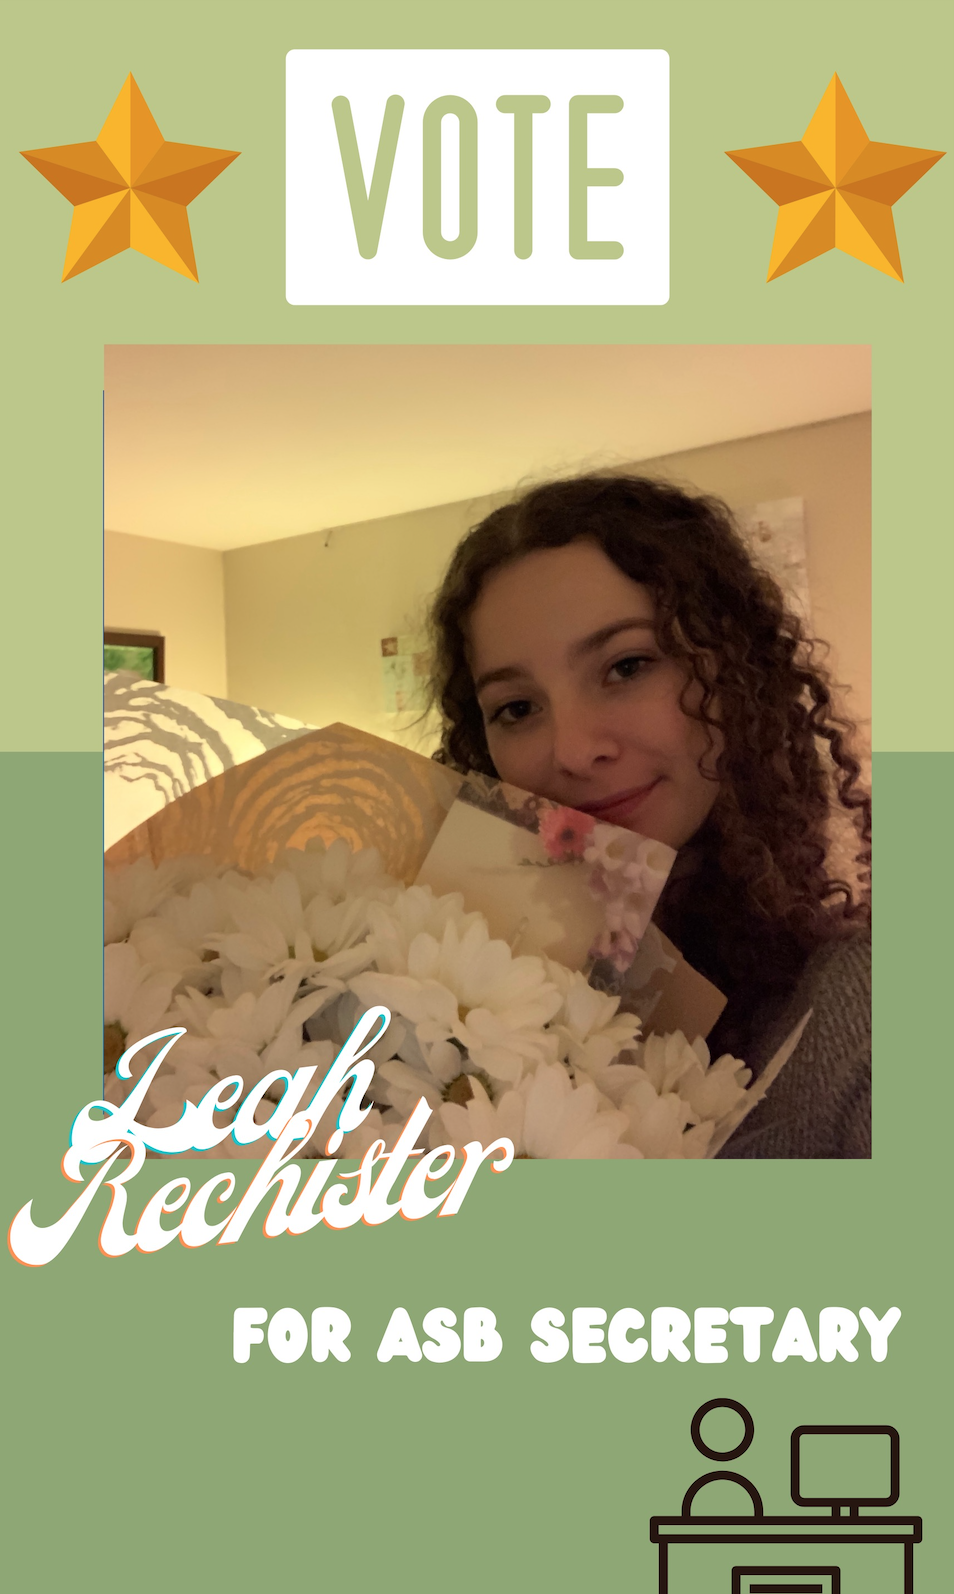 Vote for Leah